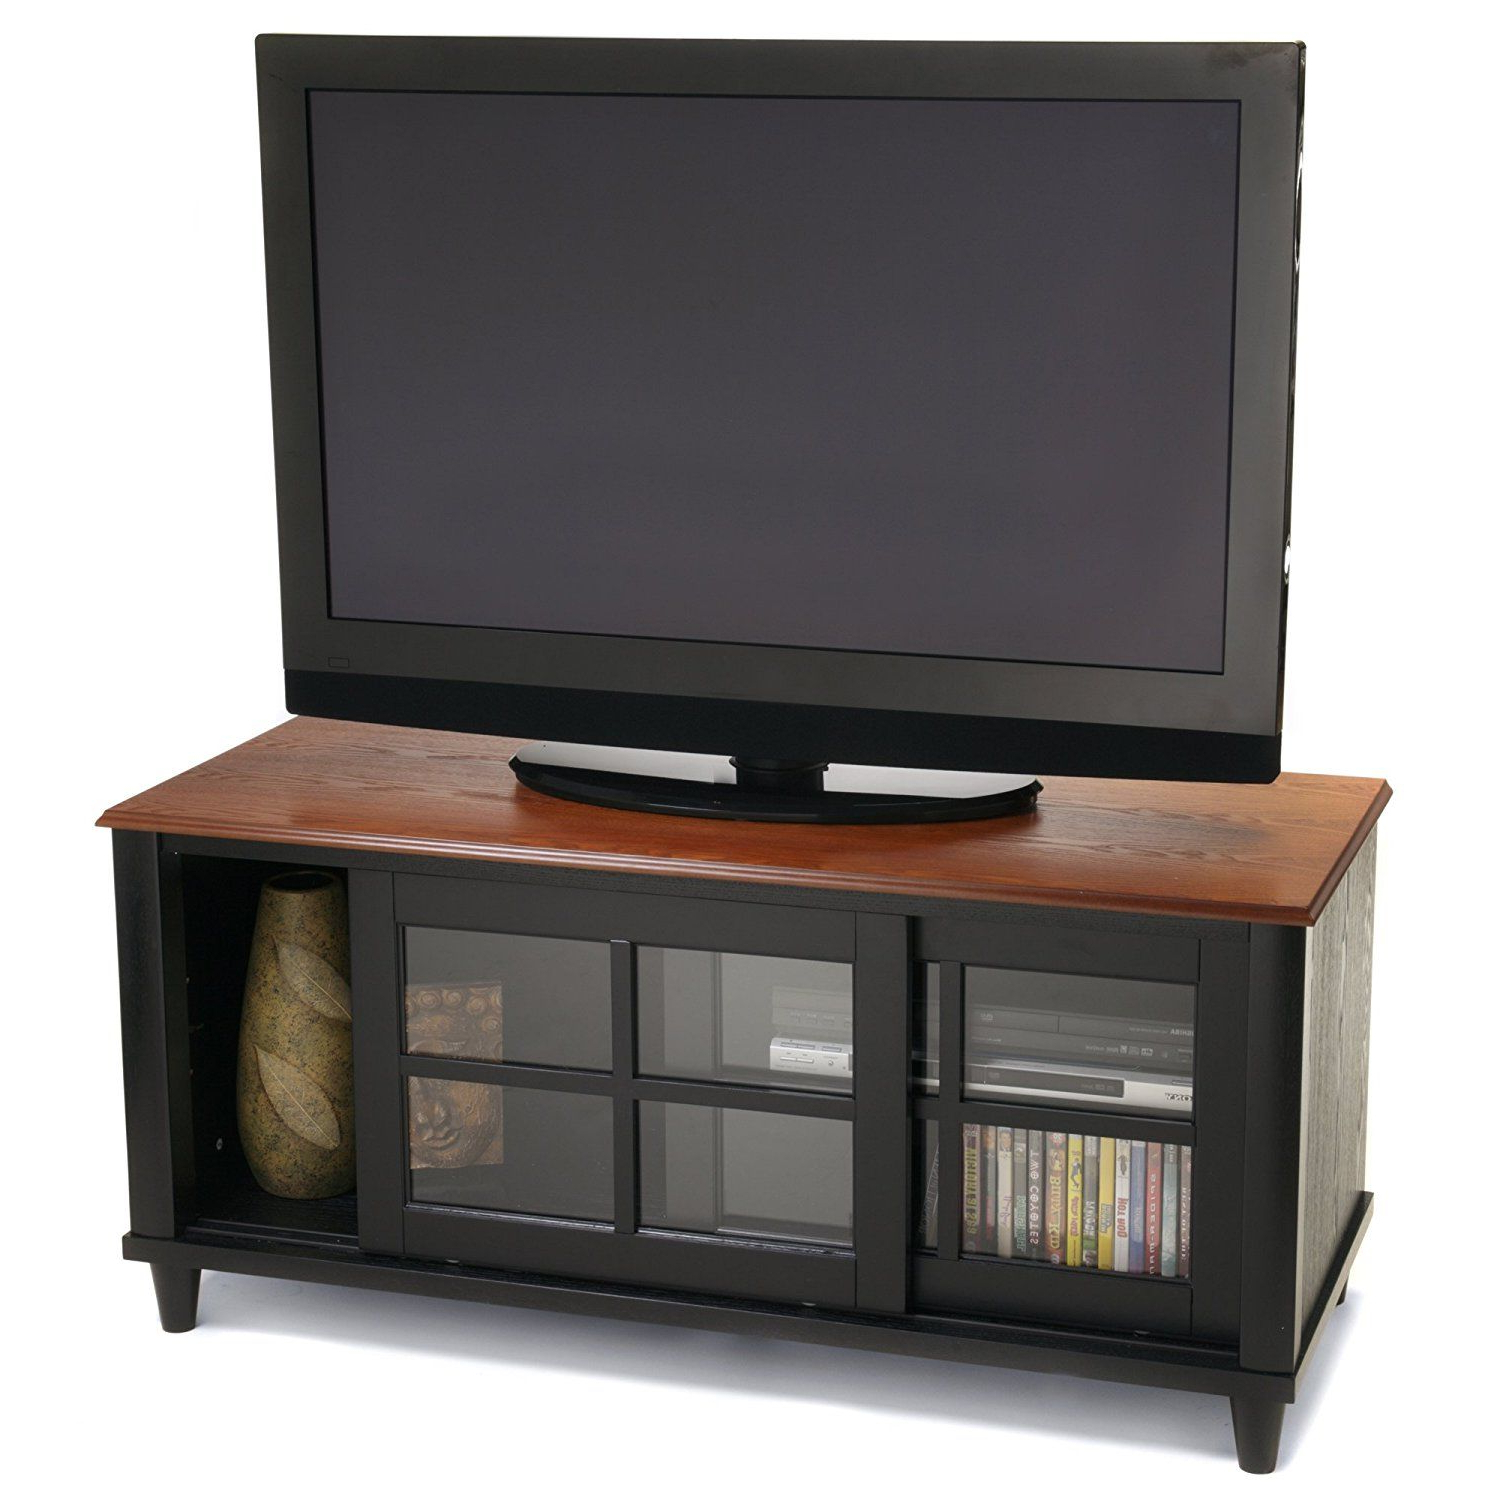 French Country Tv Stands Inside Well Known Amazon: Convenience Concepts Designs2Go French Country Tv Stand (View 6 of 20)